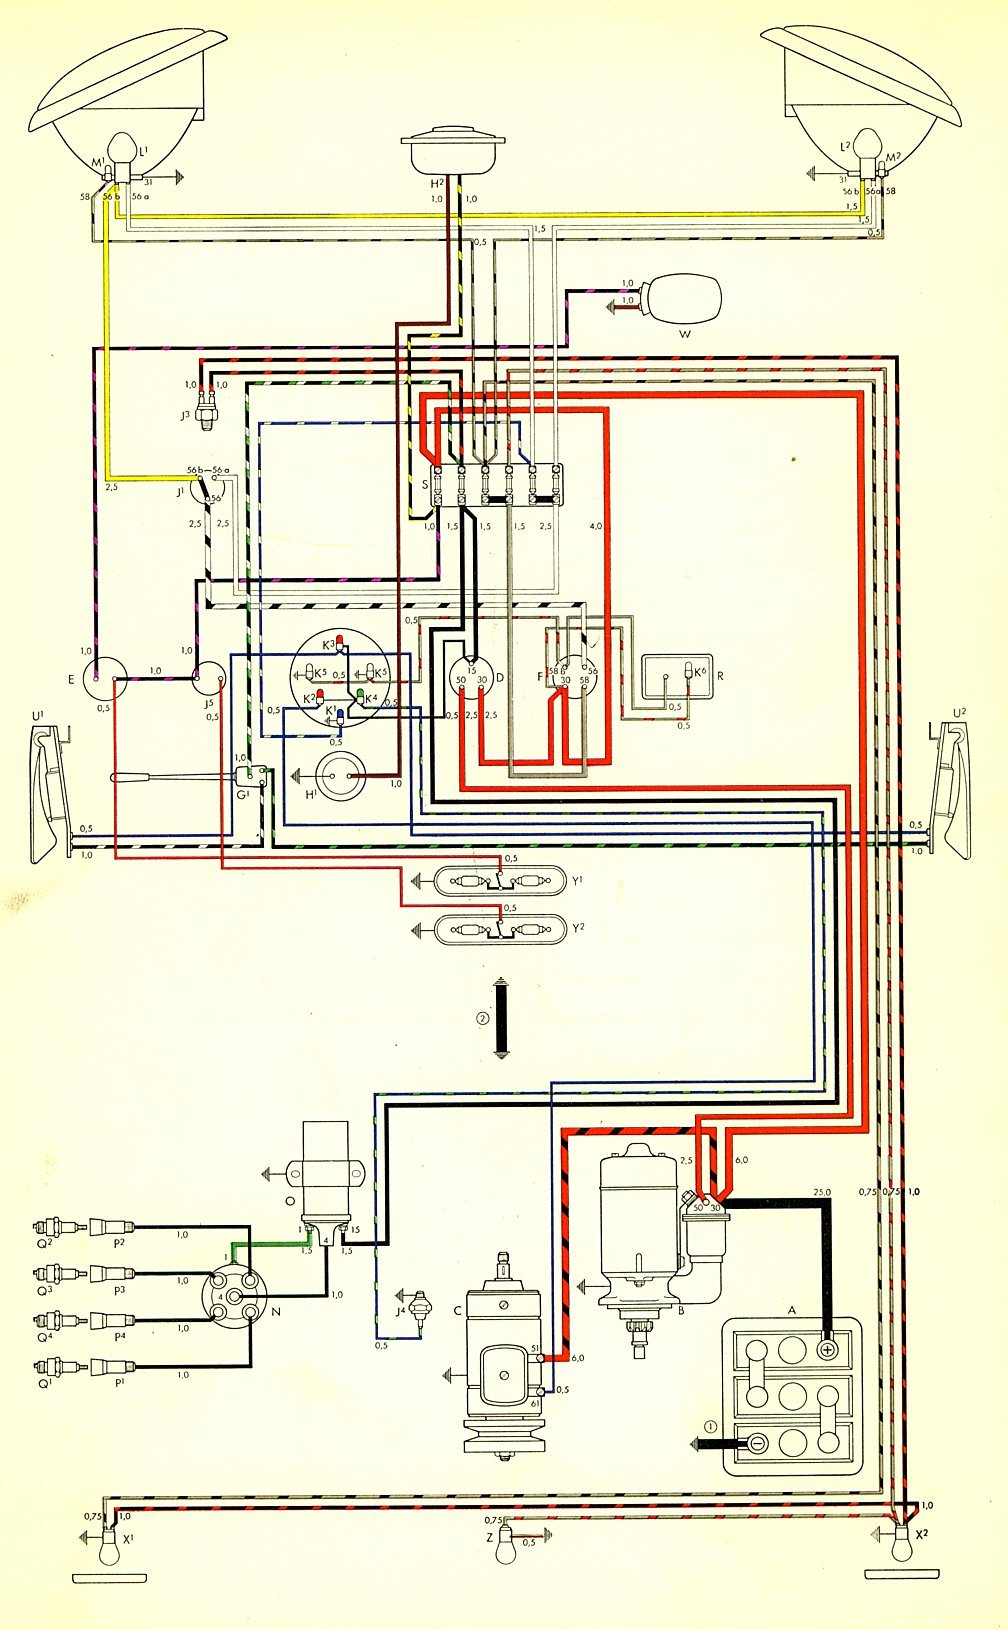 bus_59 thesamba com type 2 wiring diagrams vw bus wiring diagram at fashall.co